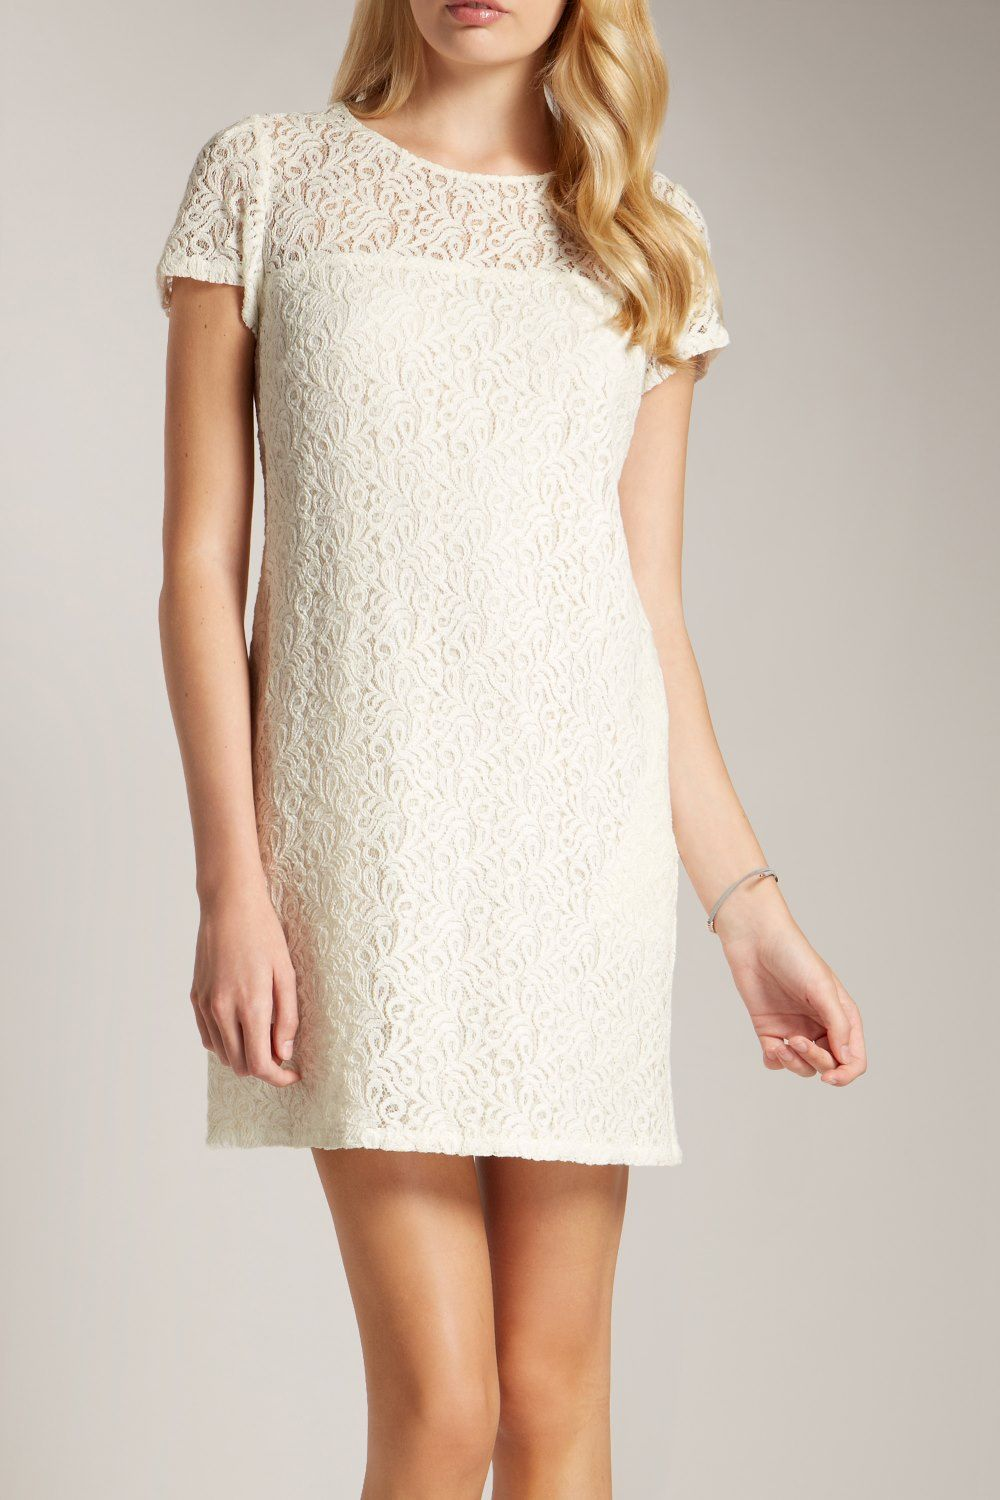 Pale pink dress for wedding guest  The Kempley Dress  Jack Wills  Fashion  short skirts and dresses